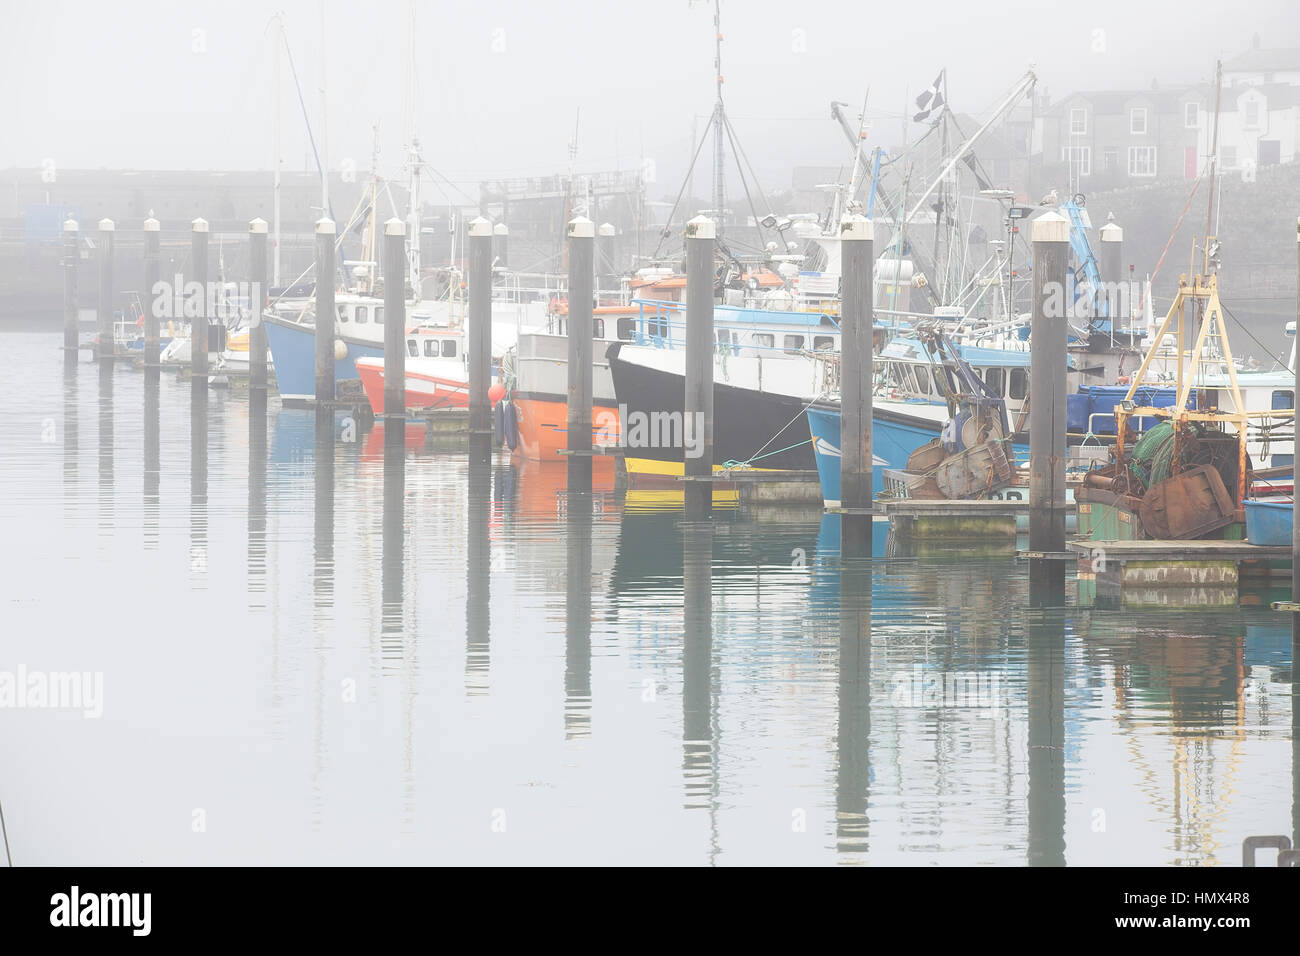 Mixed fishing and pleasure boats on a misty morning in Newlyn Harbour, Cornwall, England, UK. Stock Photo